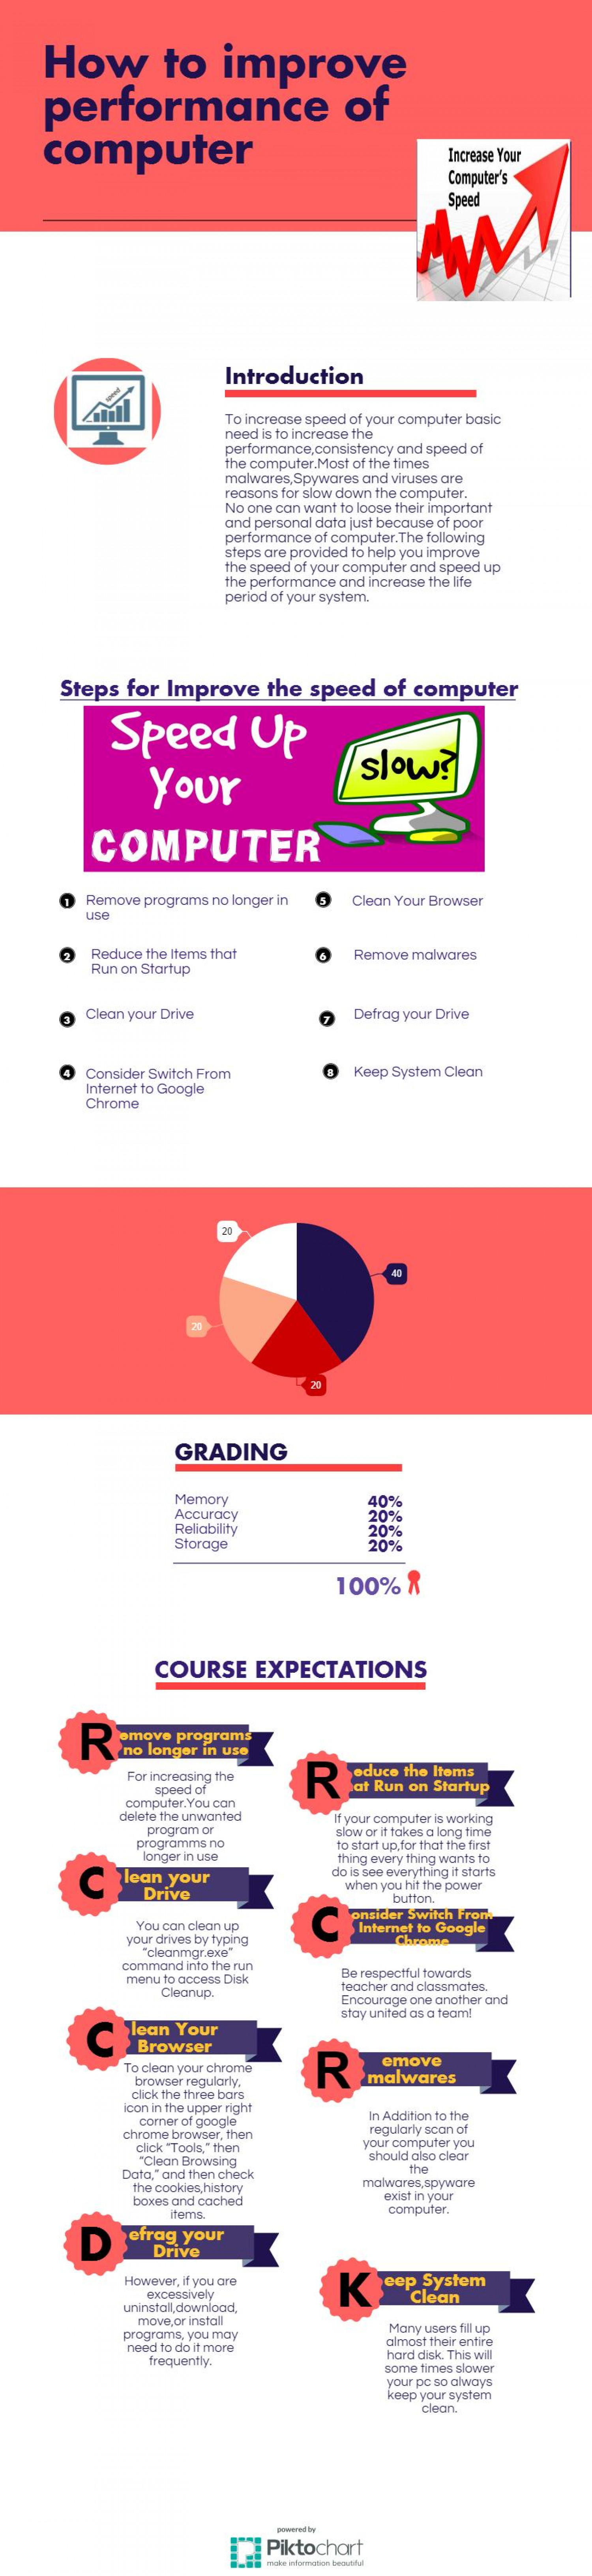 Improve Performance of Computer Infographic